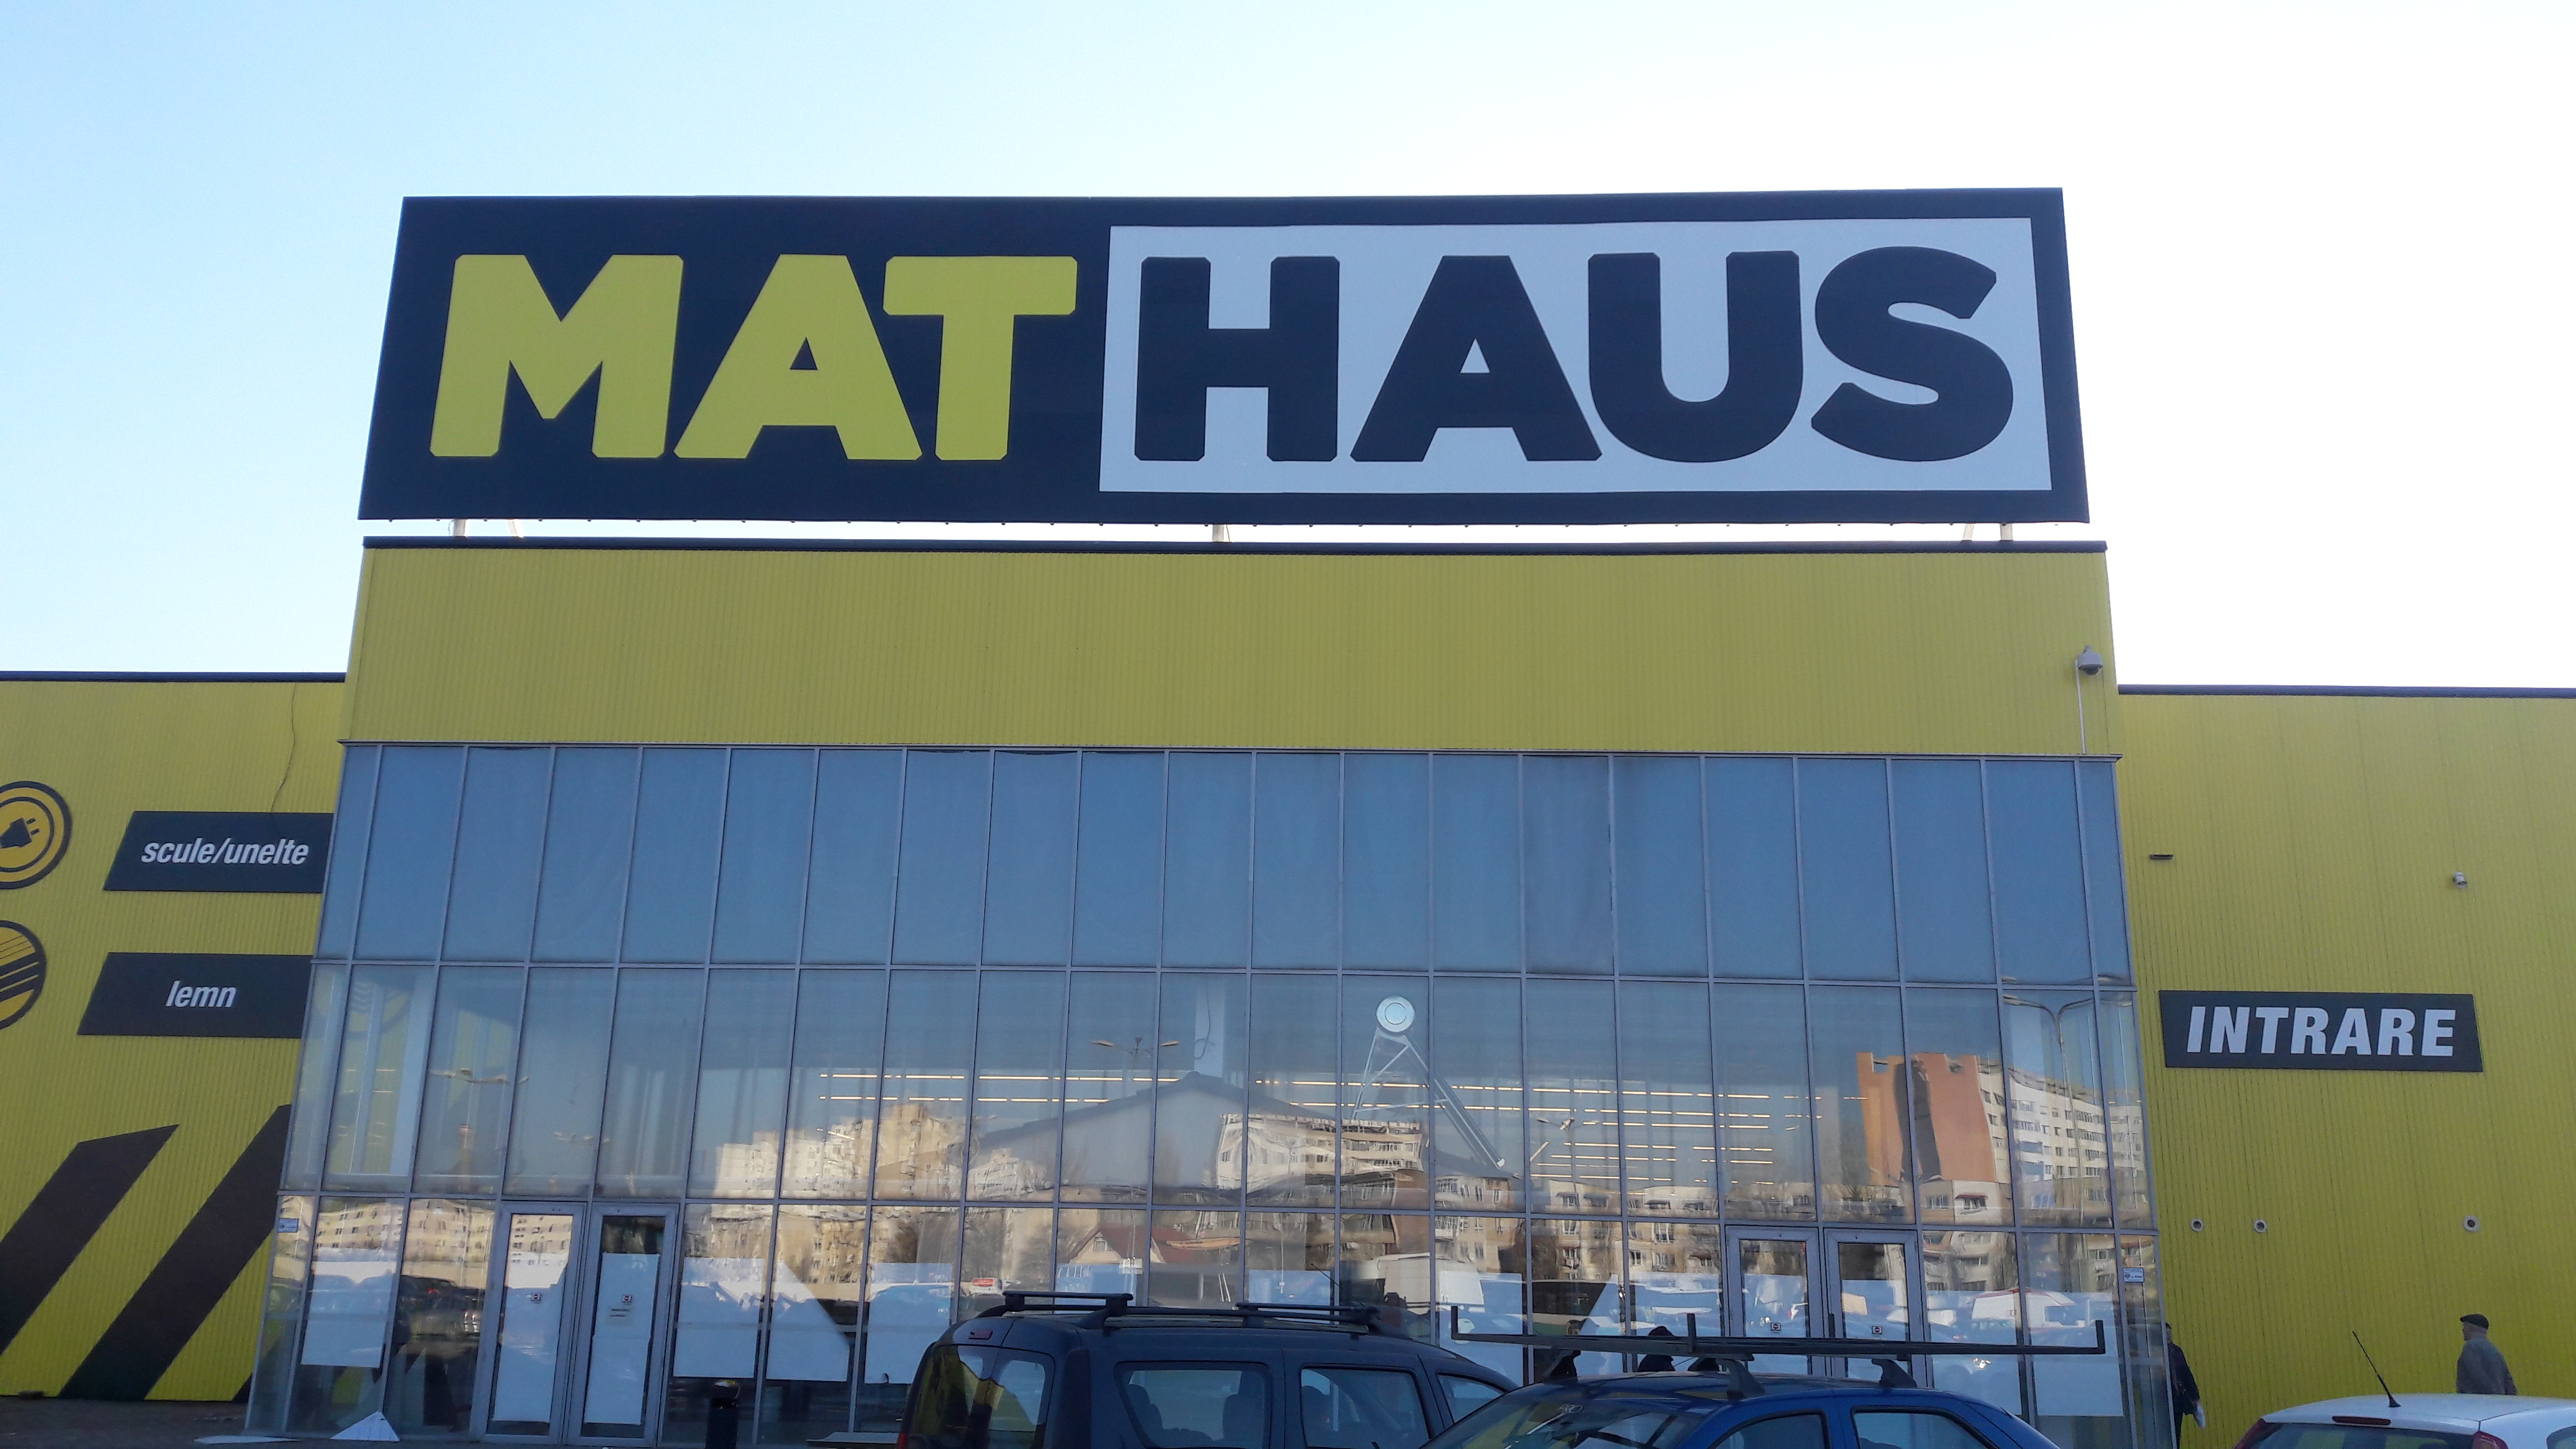 Romania's Arabesque invests 10 mln euro in first MatHaus retail store